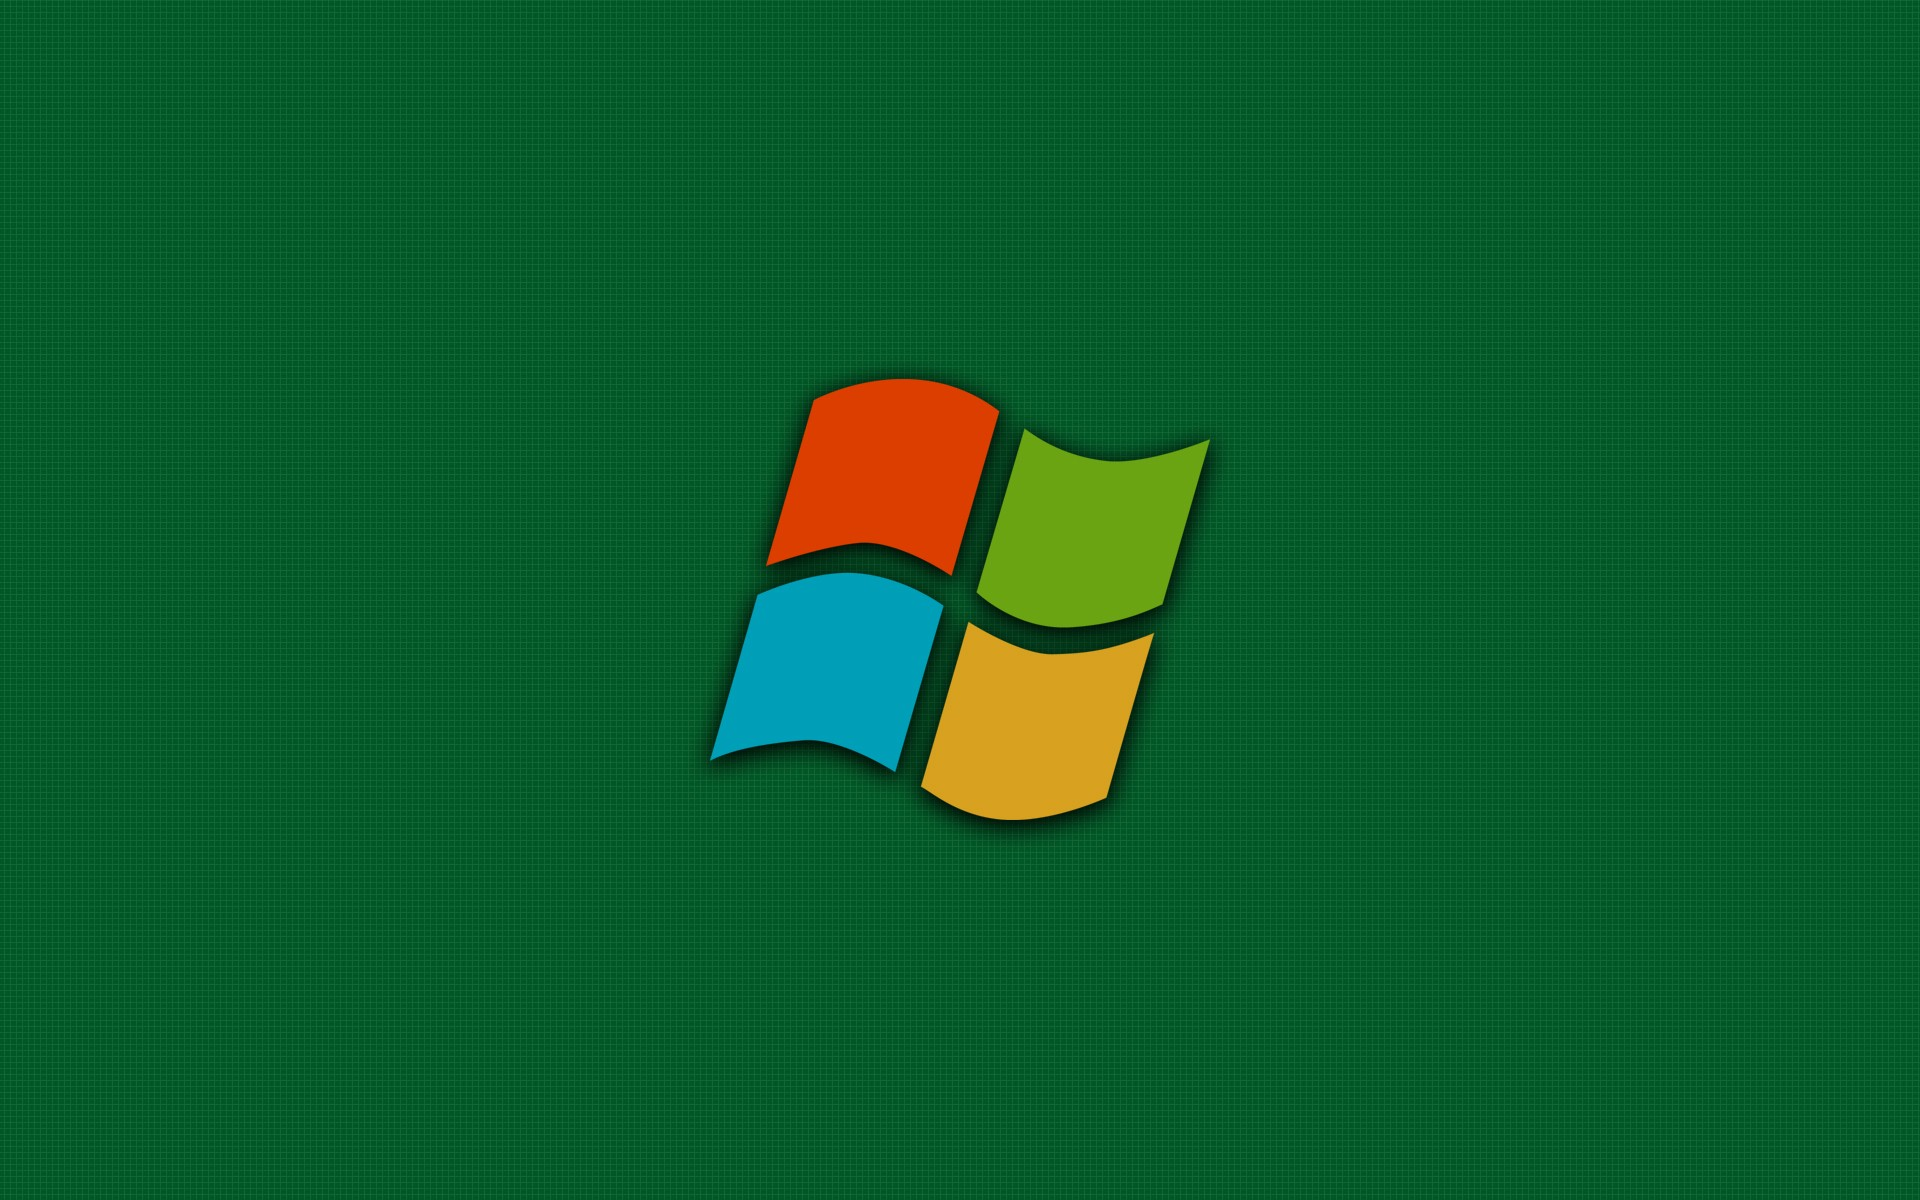 microsoft microsoft windows HD Wallpaper